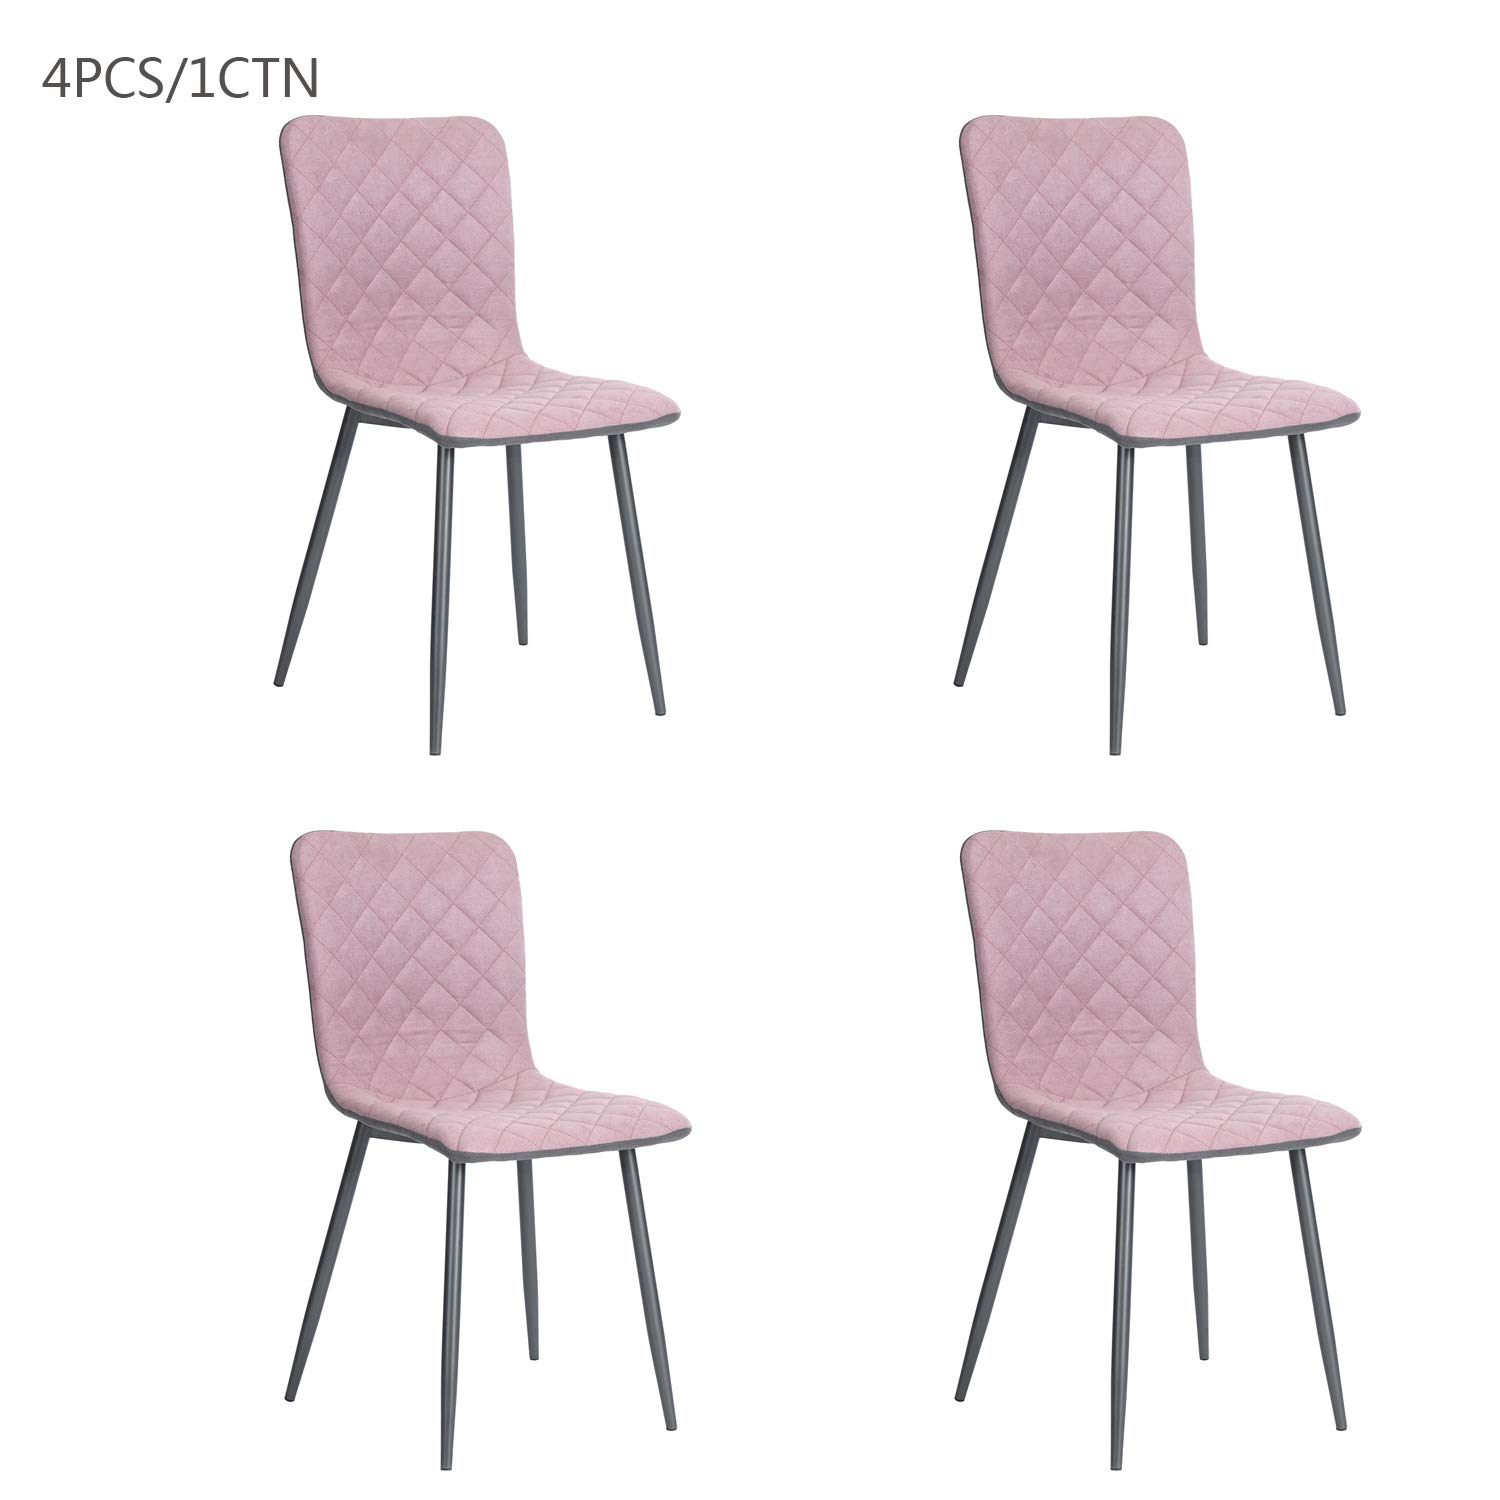 Pink Dining Chair Fanilife Wood Legs Fabric Cushion Seat Mental Wood Legs Rack Support Low-Back Soft Back for Living Room Chairs, Set of 4